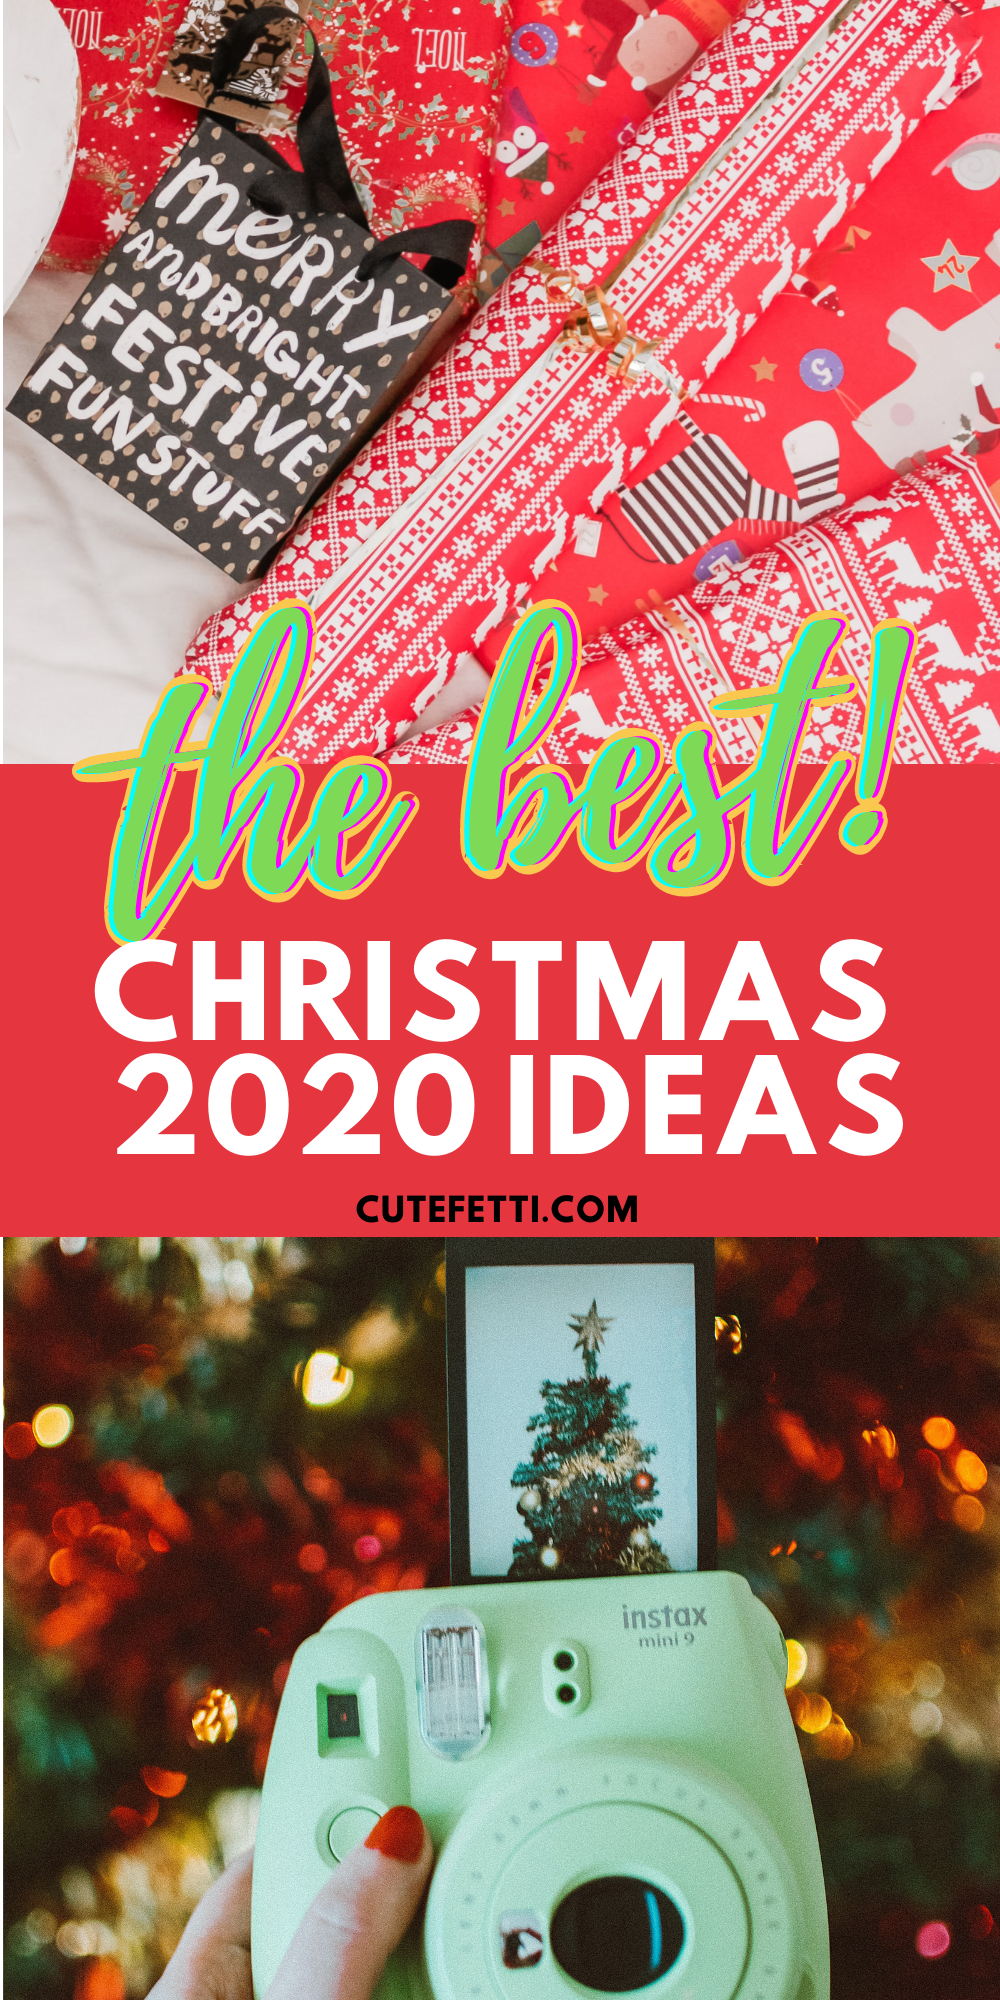 No Contact Christmas Ideas In 2020 Ultimate Christmas Party Christmas Party Themes Christmas Events